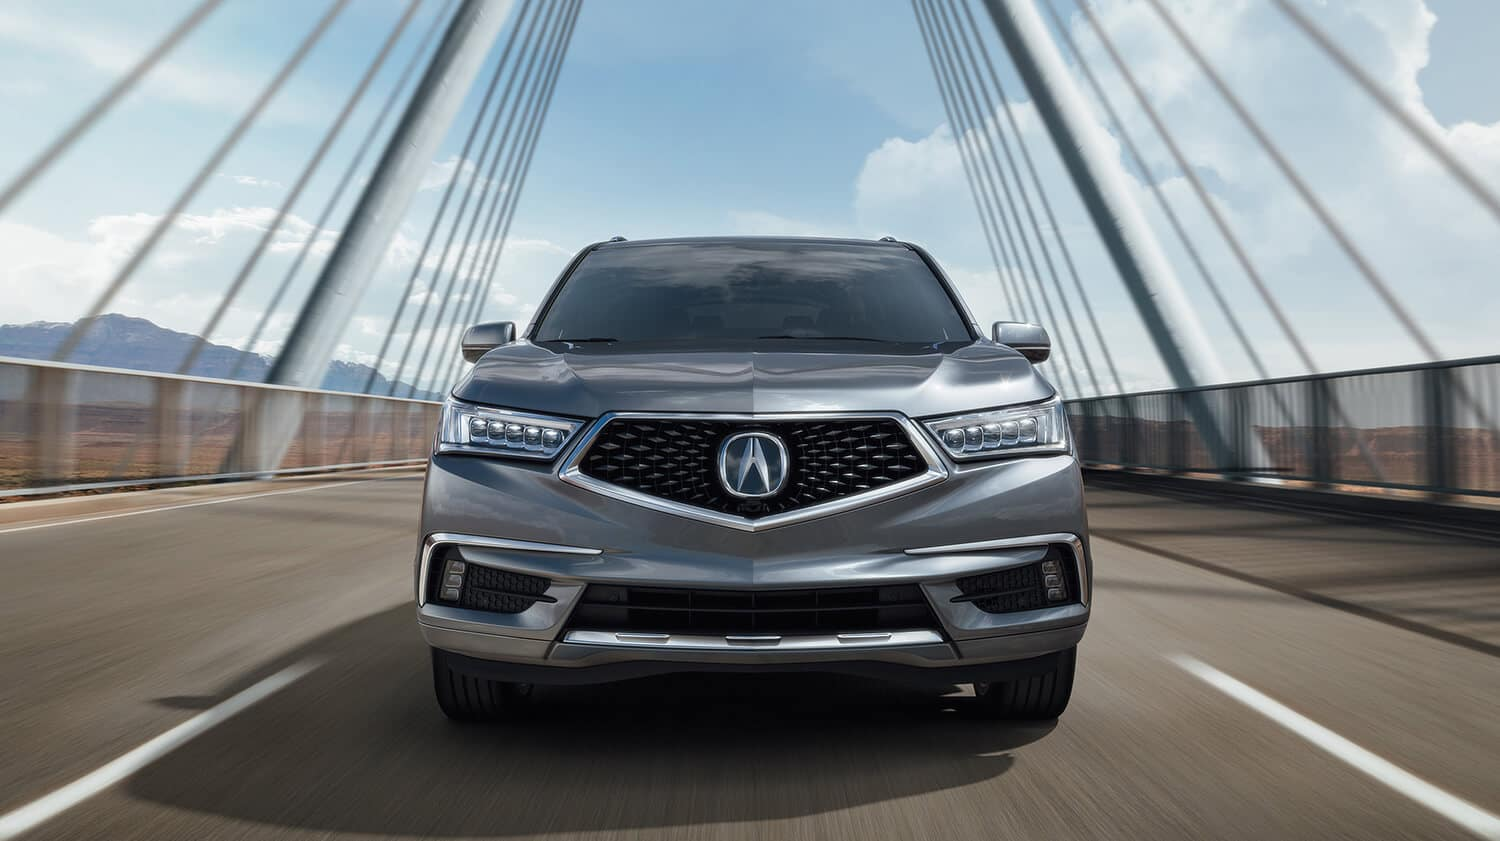 Acura MDX Rocky Mountain Acura Dealers ThirdRow Luxury SUV - Acura mdx front grill